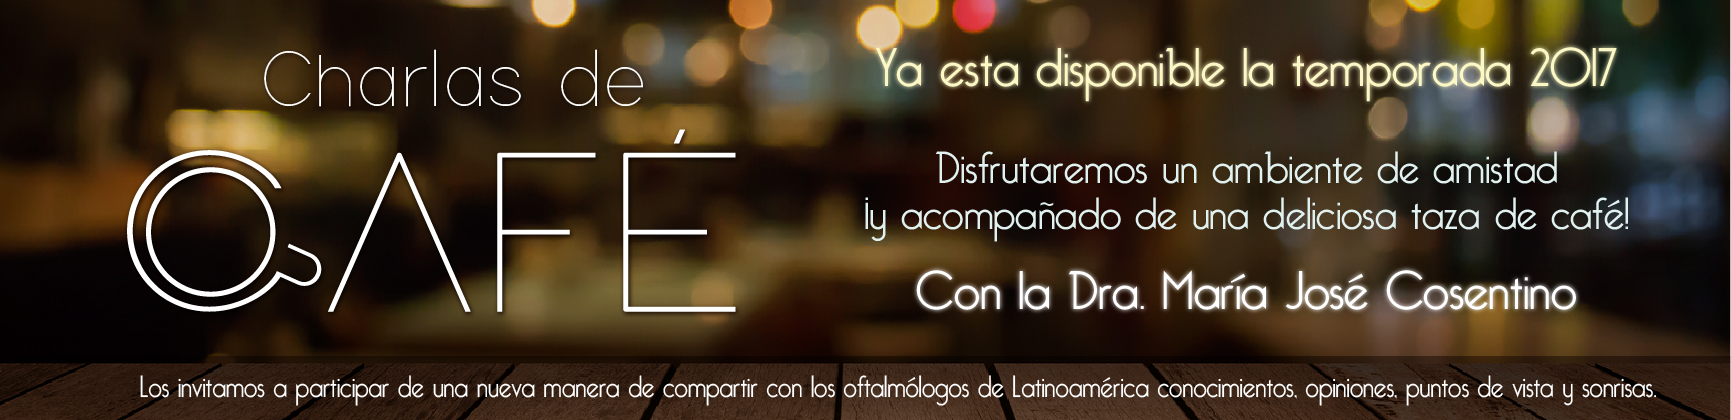 banner_web_charlas_cafe